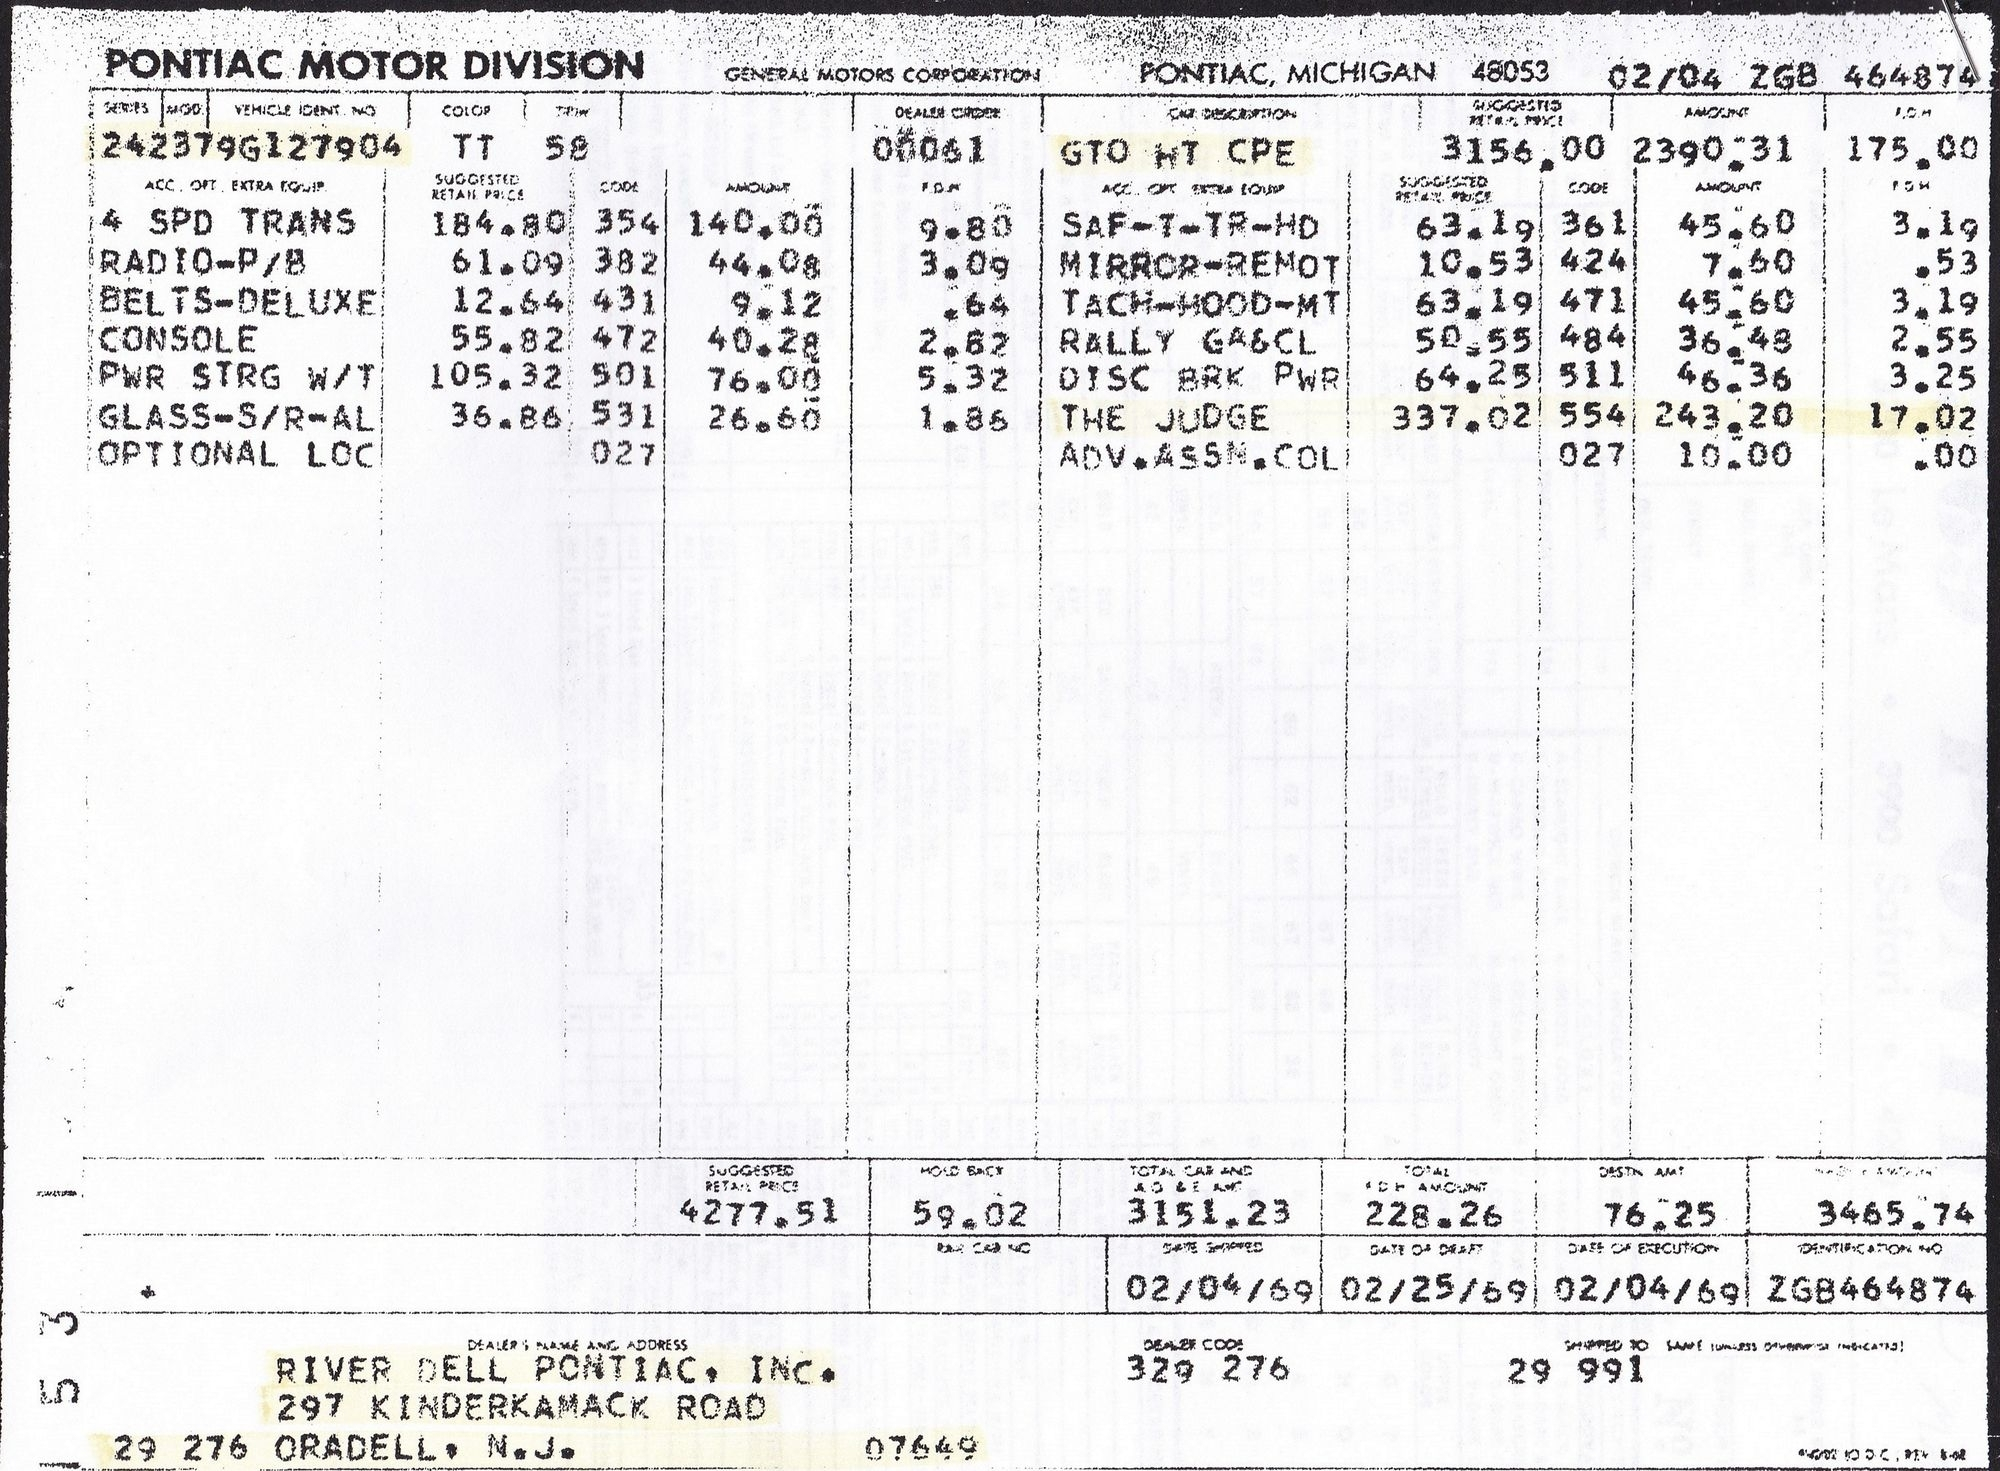 Vehicle Invoice By Vin